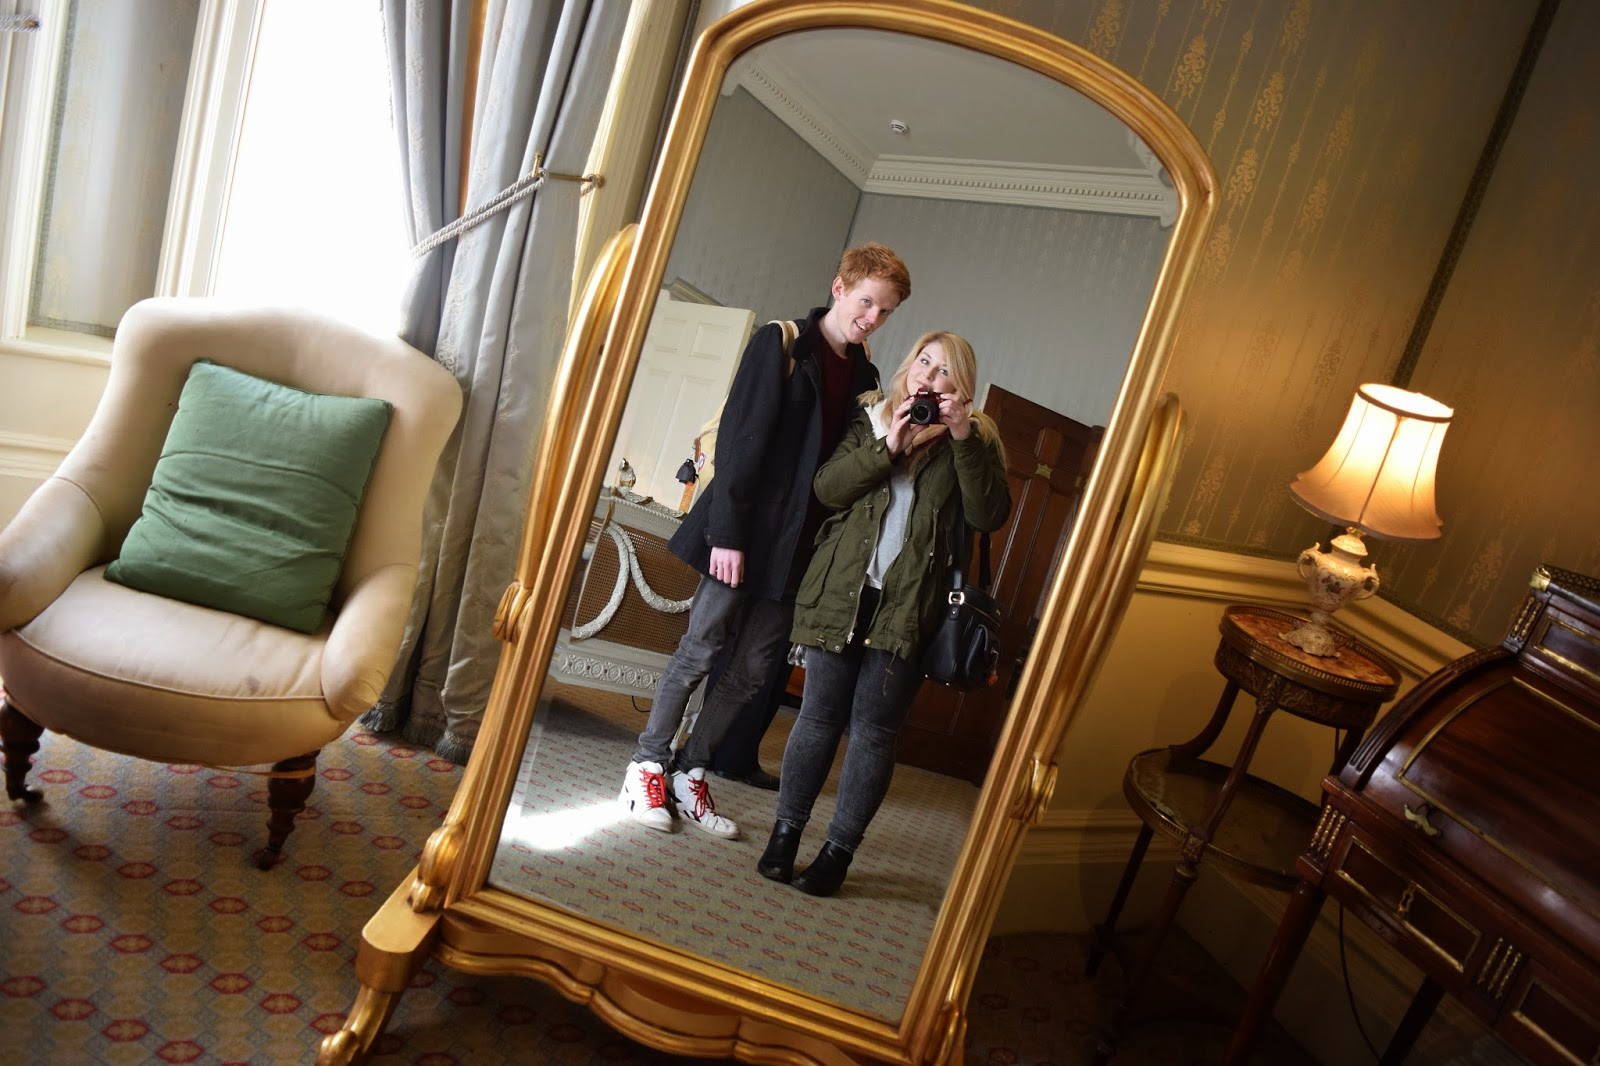 Myself and Sean taking a mirror selfie inside one of the state rooms at warwick castle